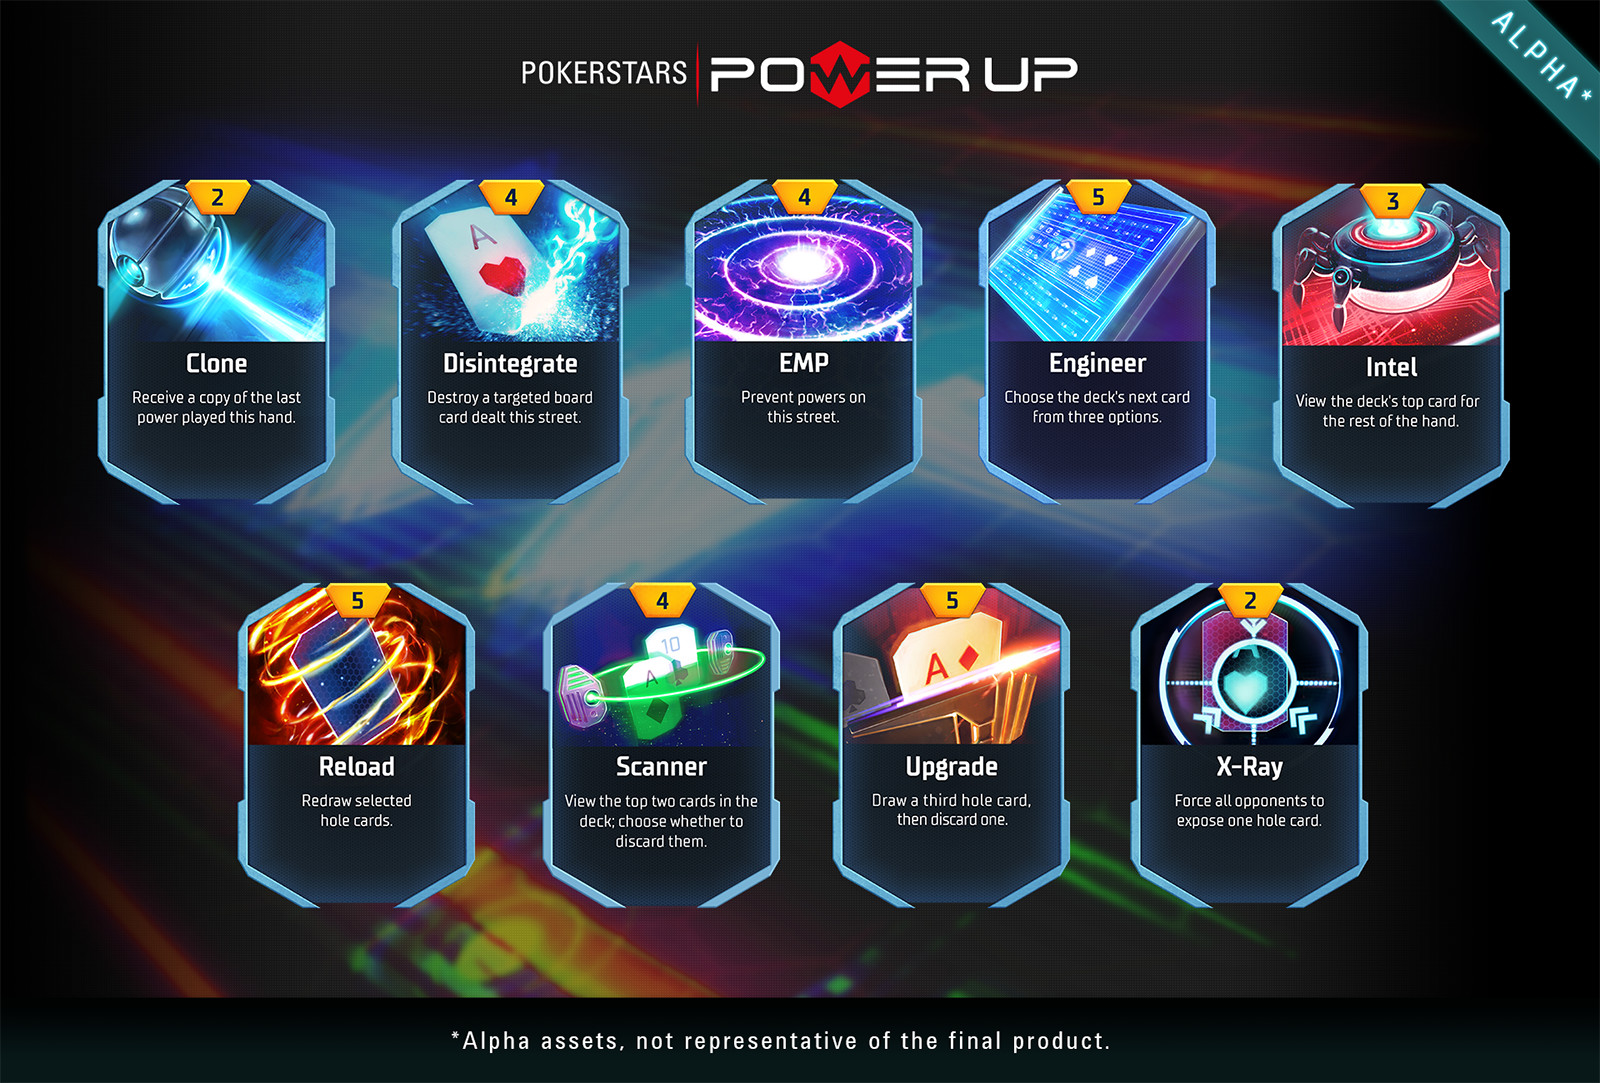 PokerStars testet Power Up, ein neues Poker Spiel 101